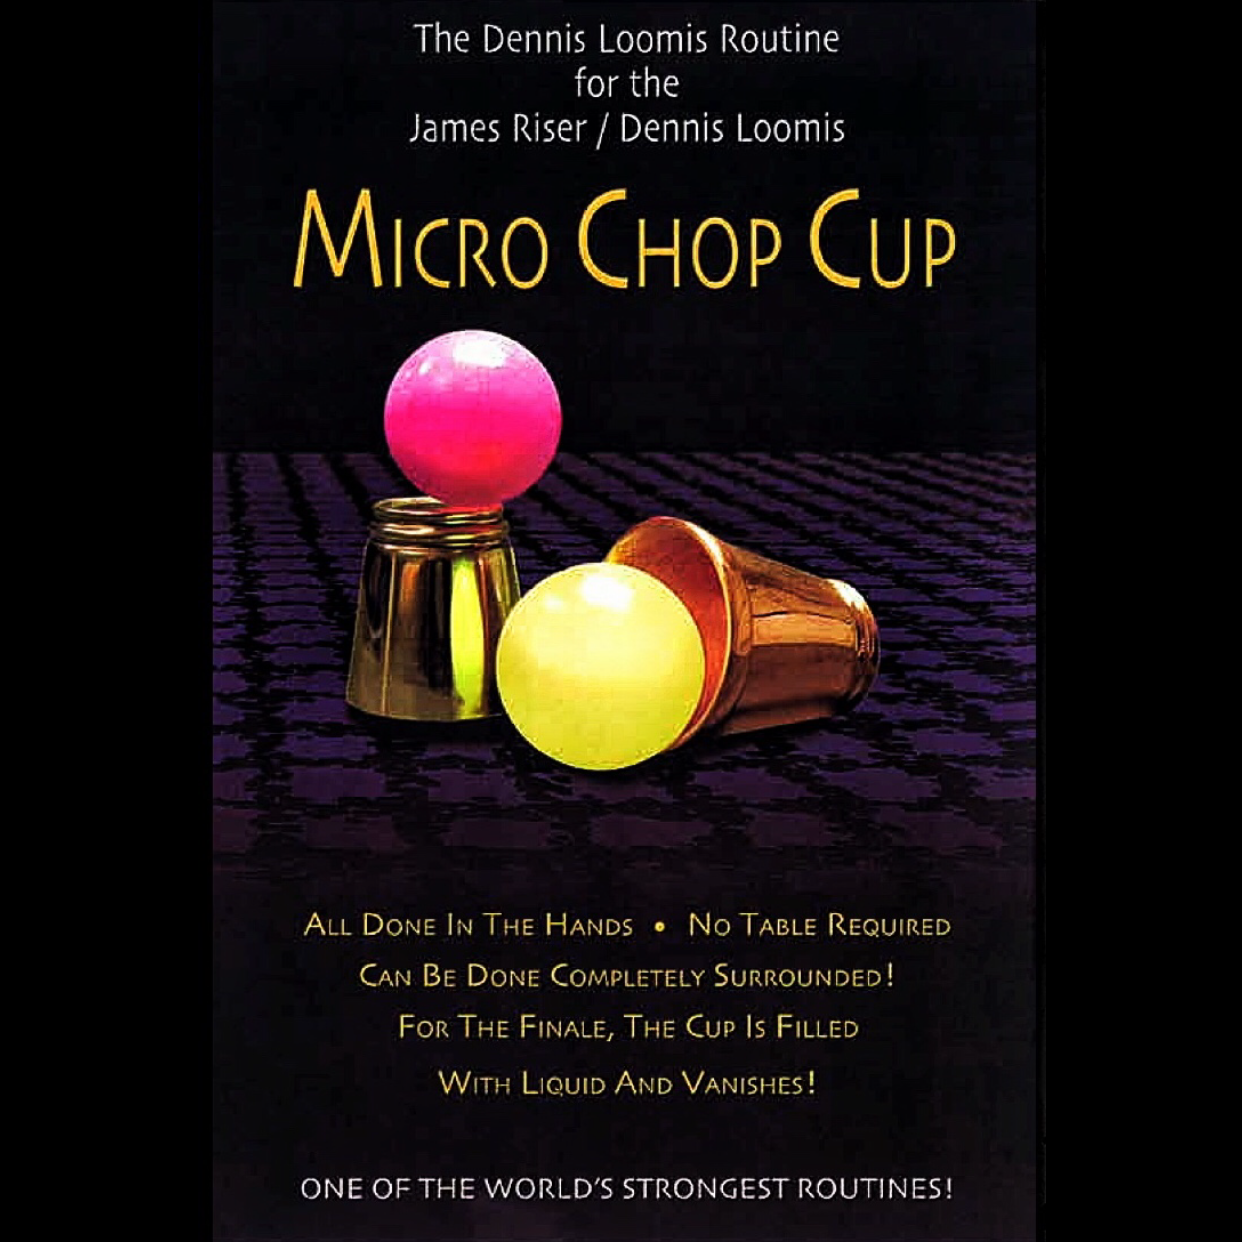 The Dennis Loomis Chop Cup Routine - Book - SOLD OUT